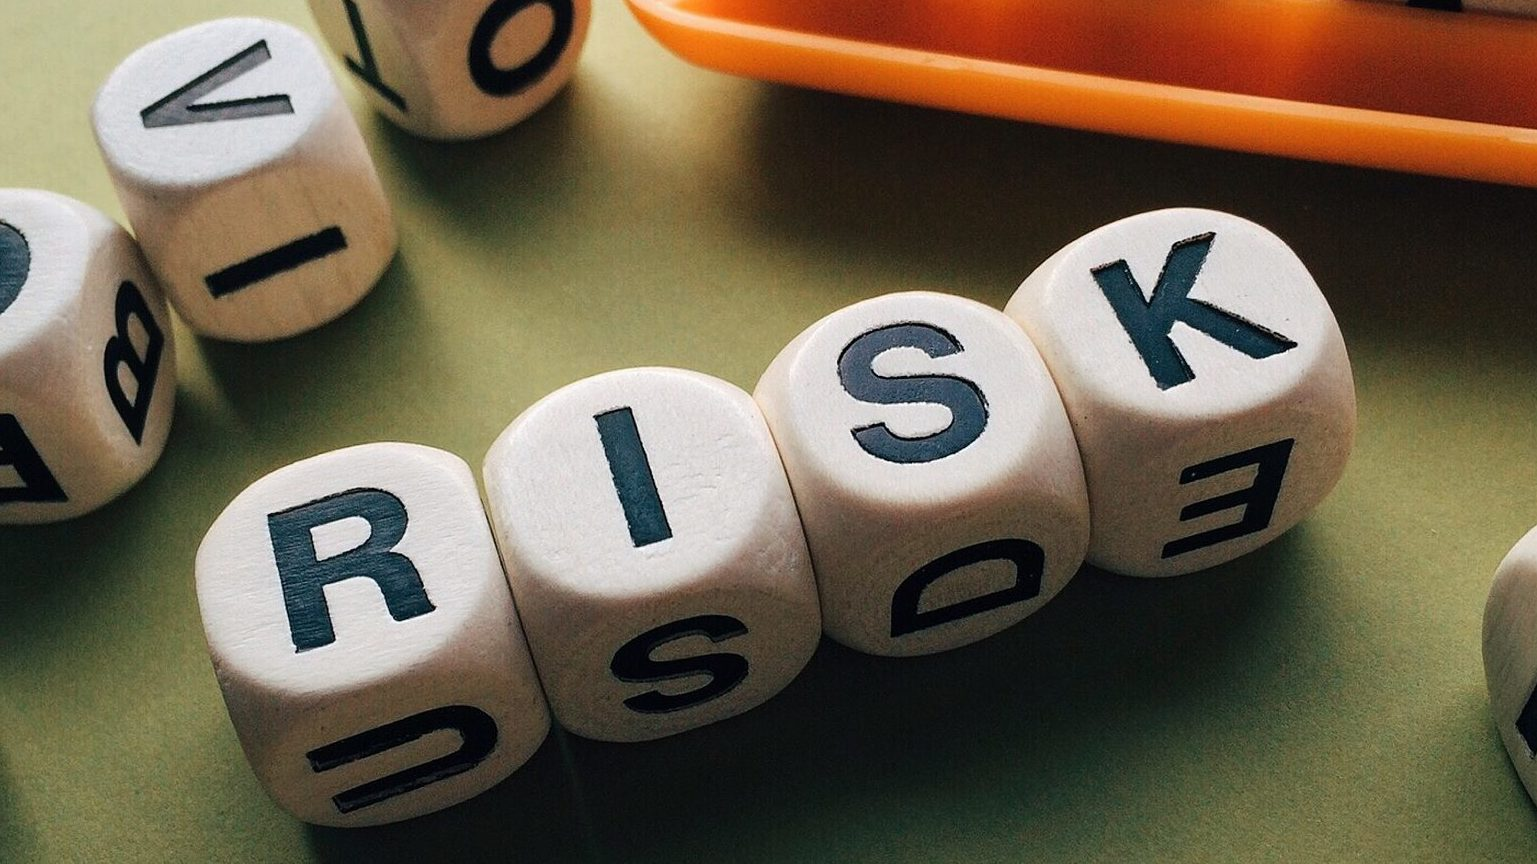 IT Governance, Risk and Compliance